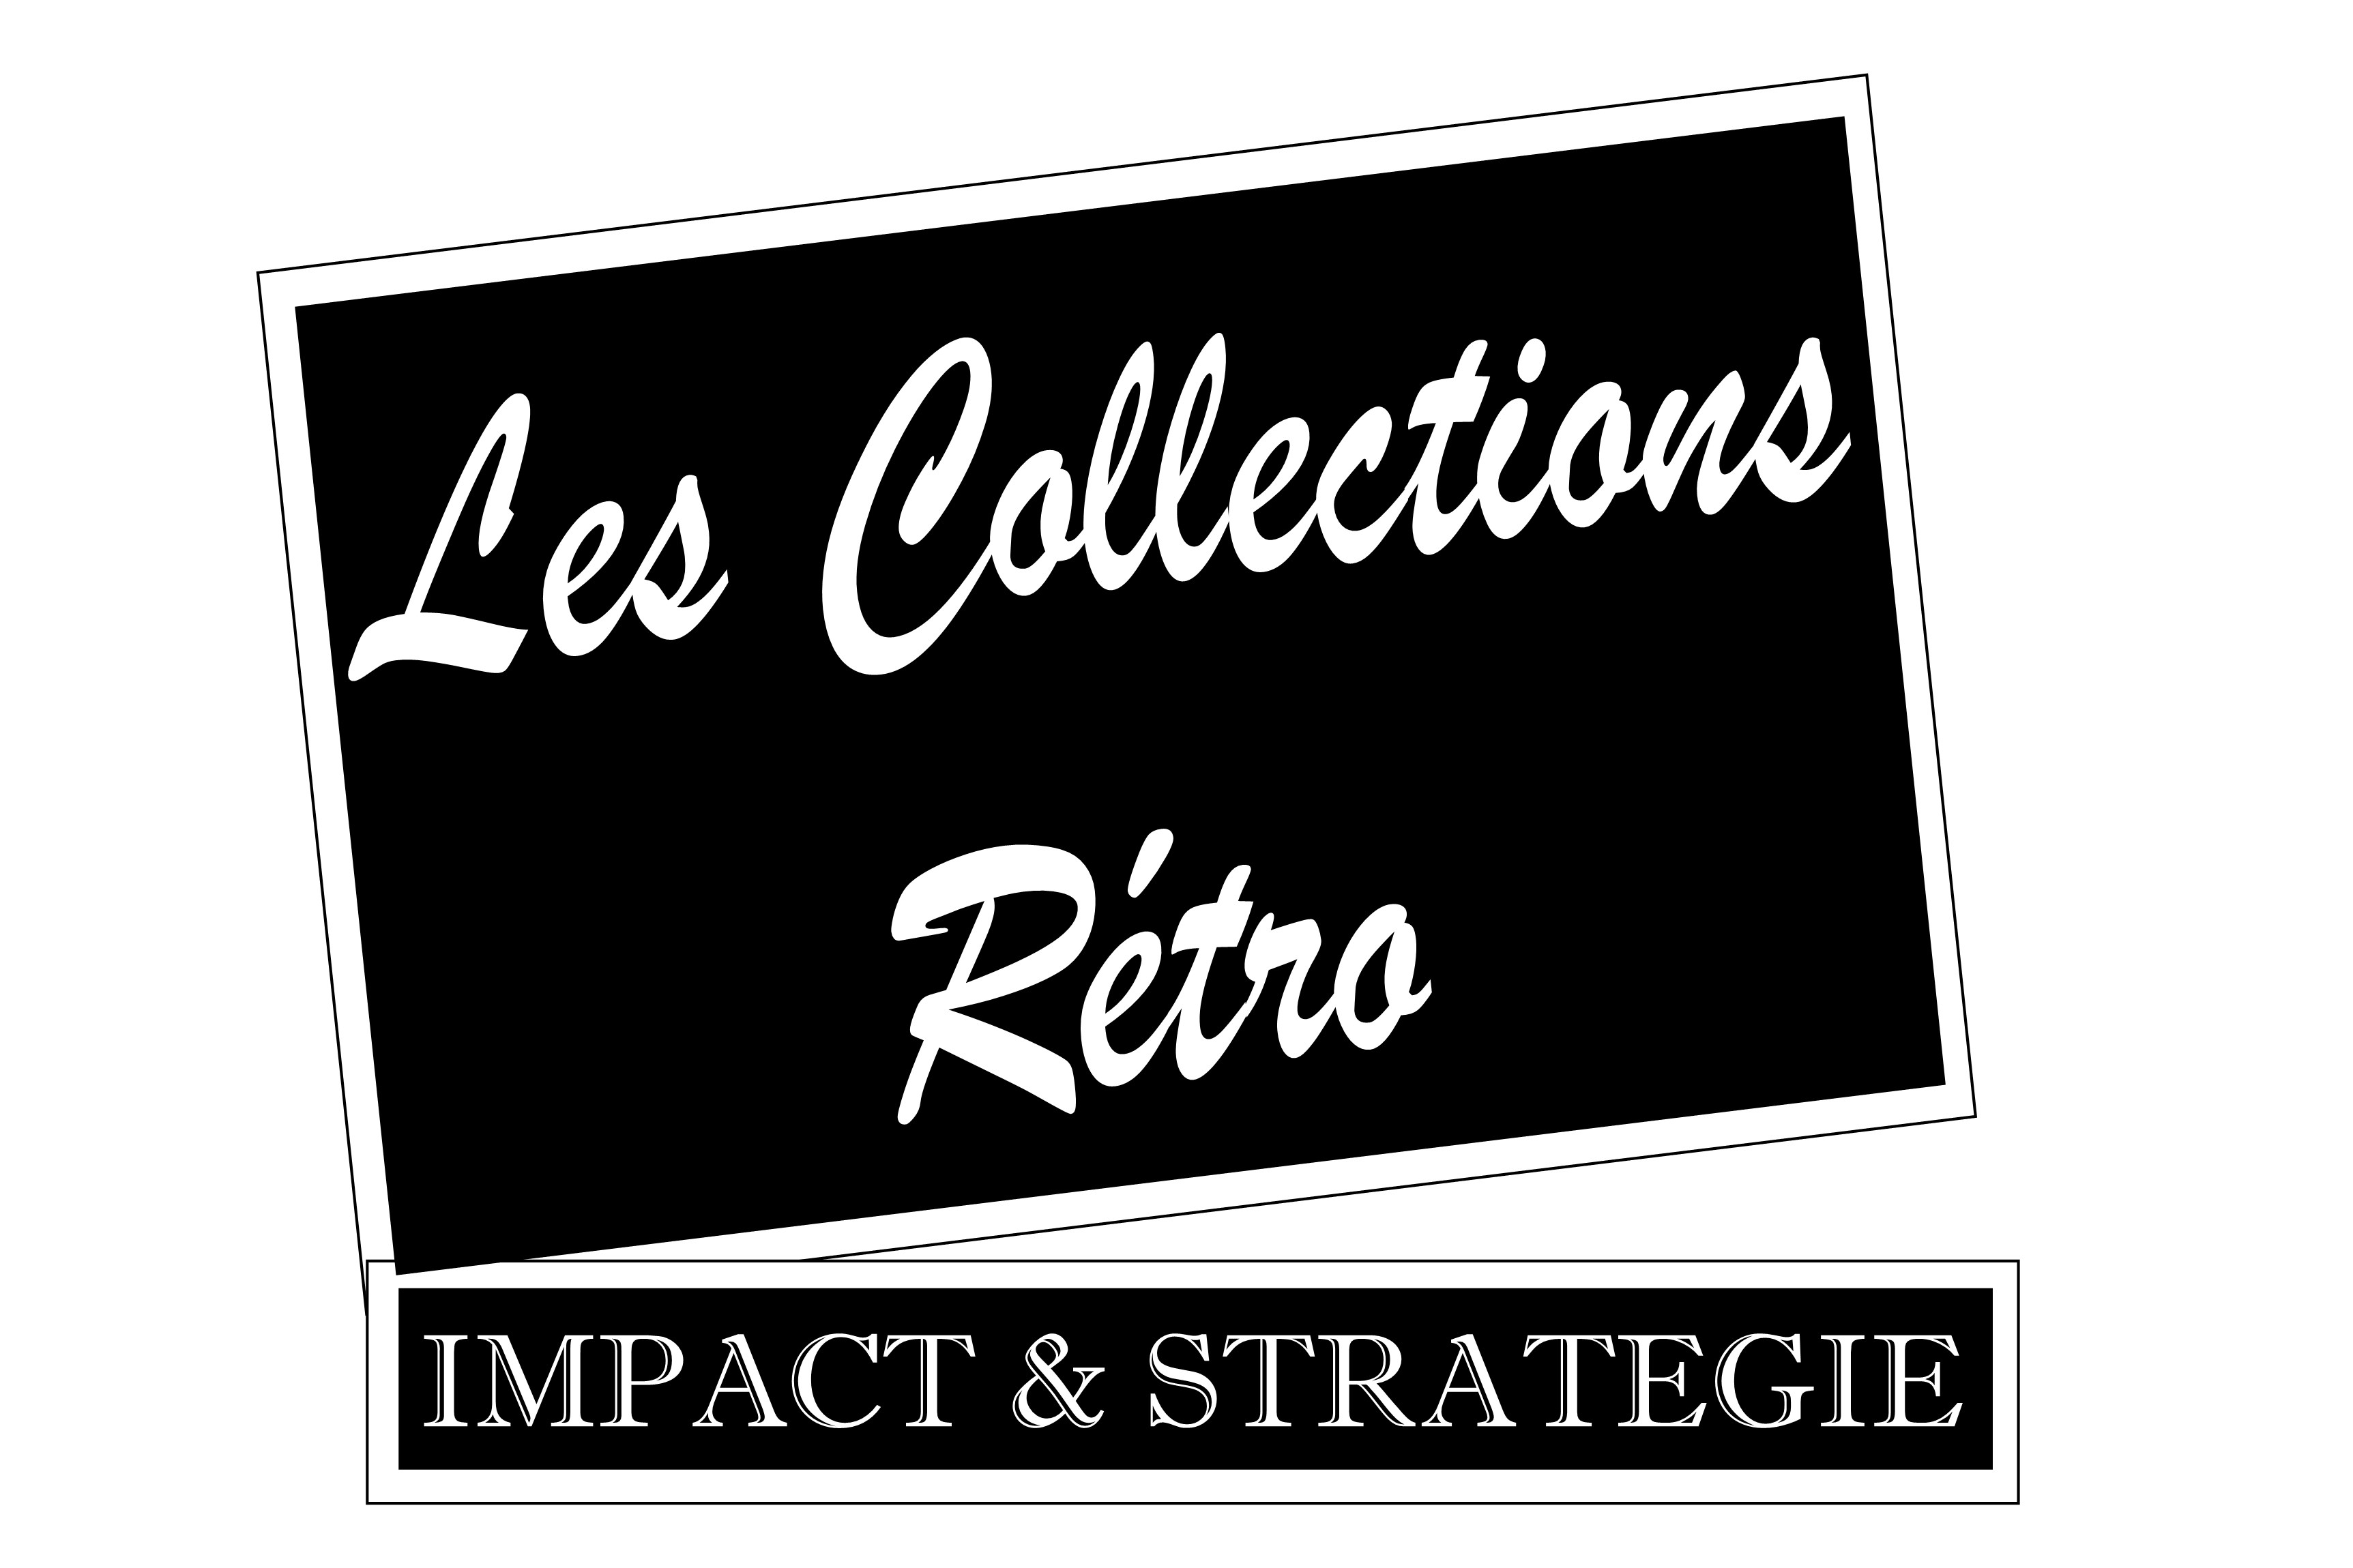 LES_COLLECTIONS_RETRO